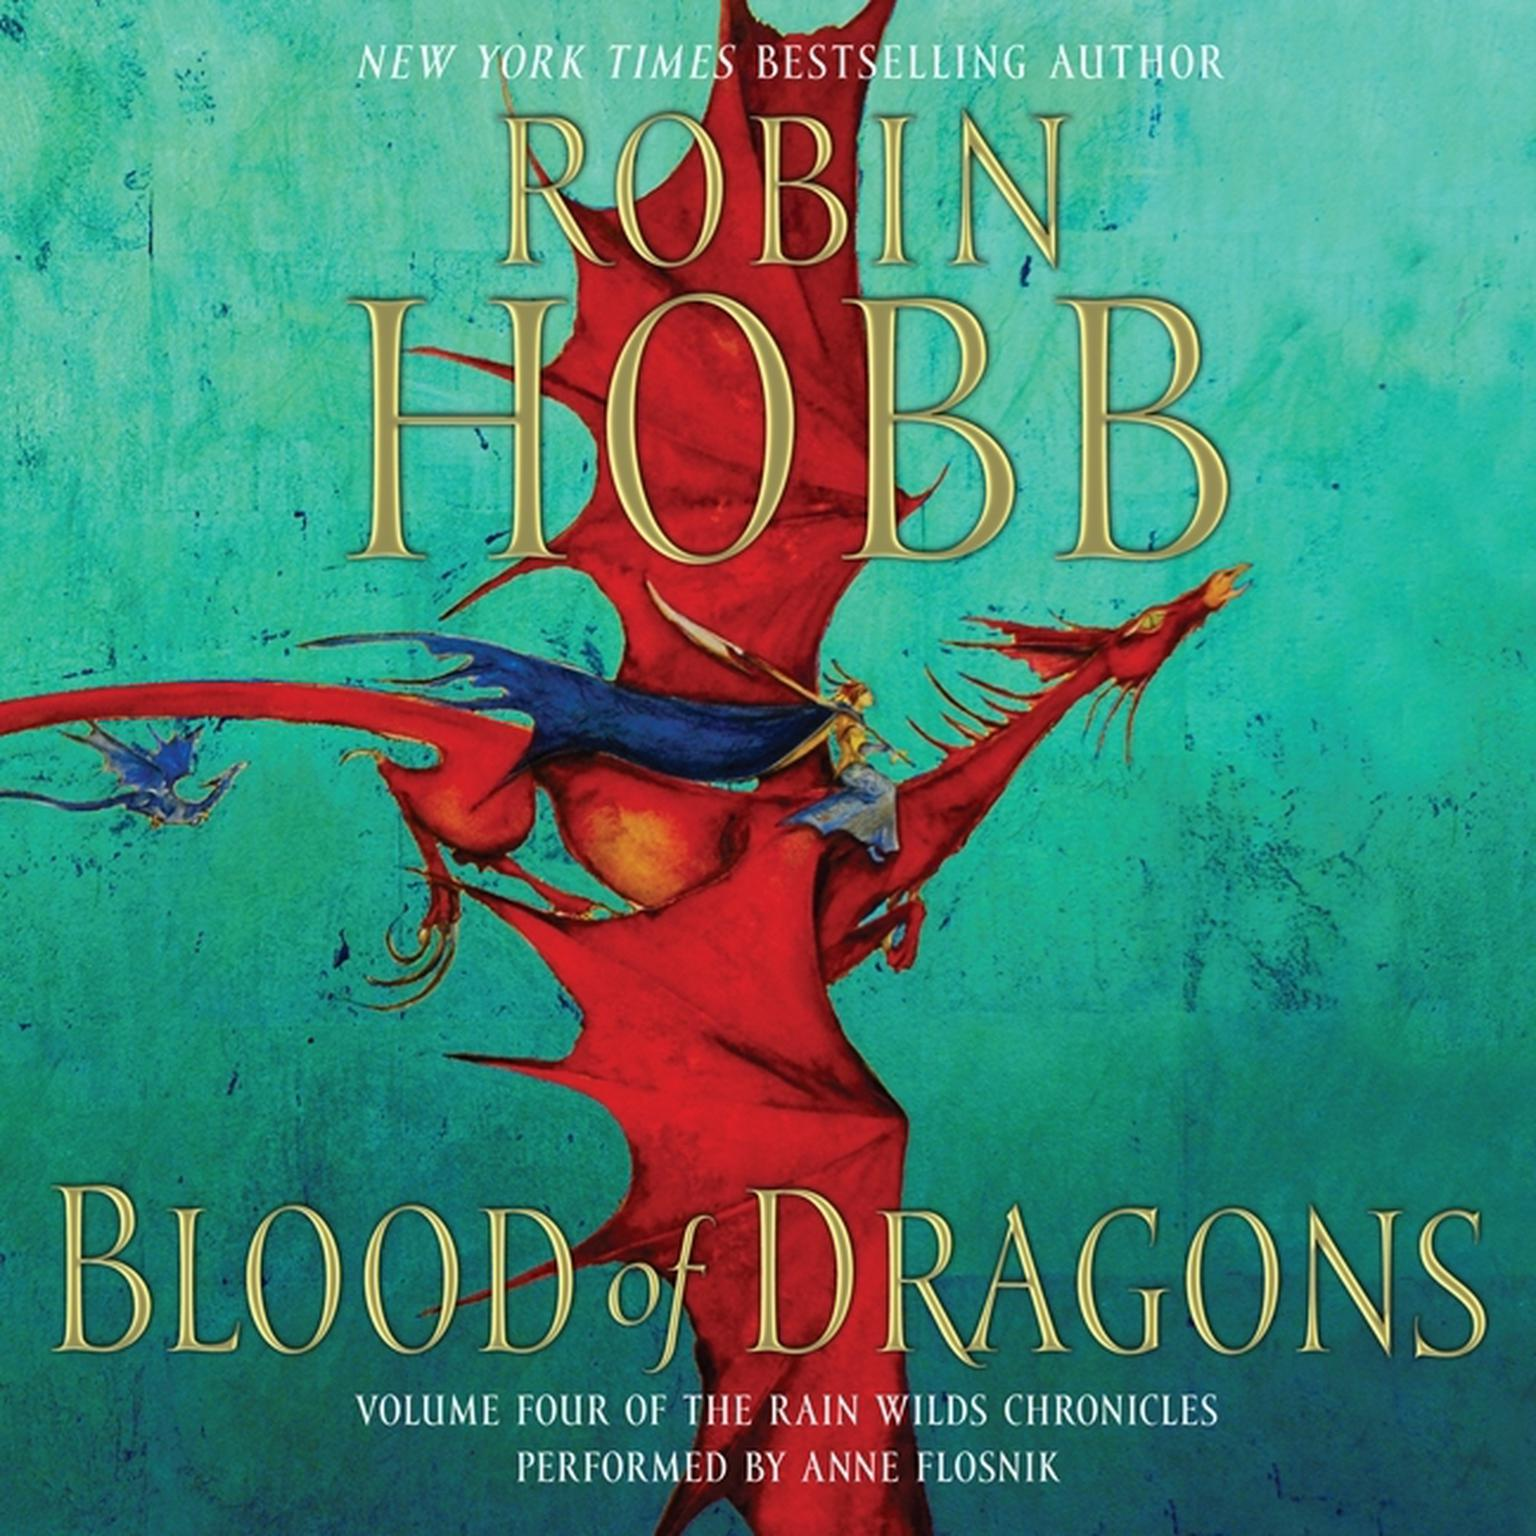 Printable Blood of Dragons: Volume Four of the Rain Wilds Chronicles Audiobook Cover Art